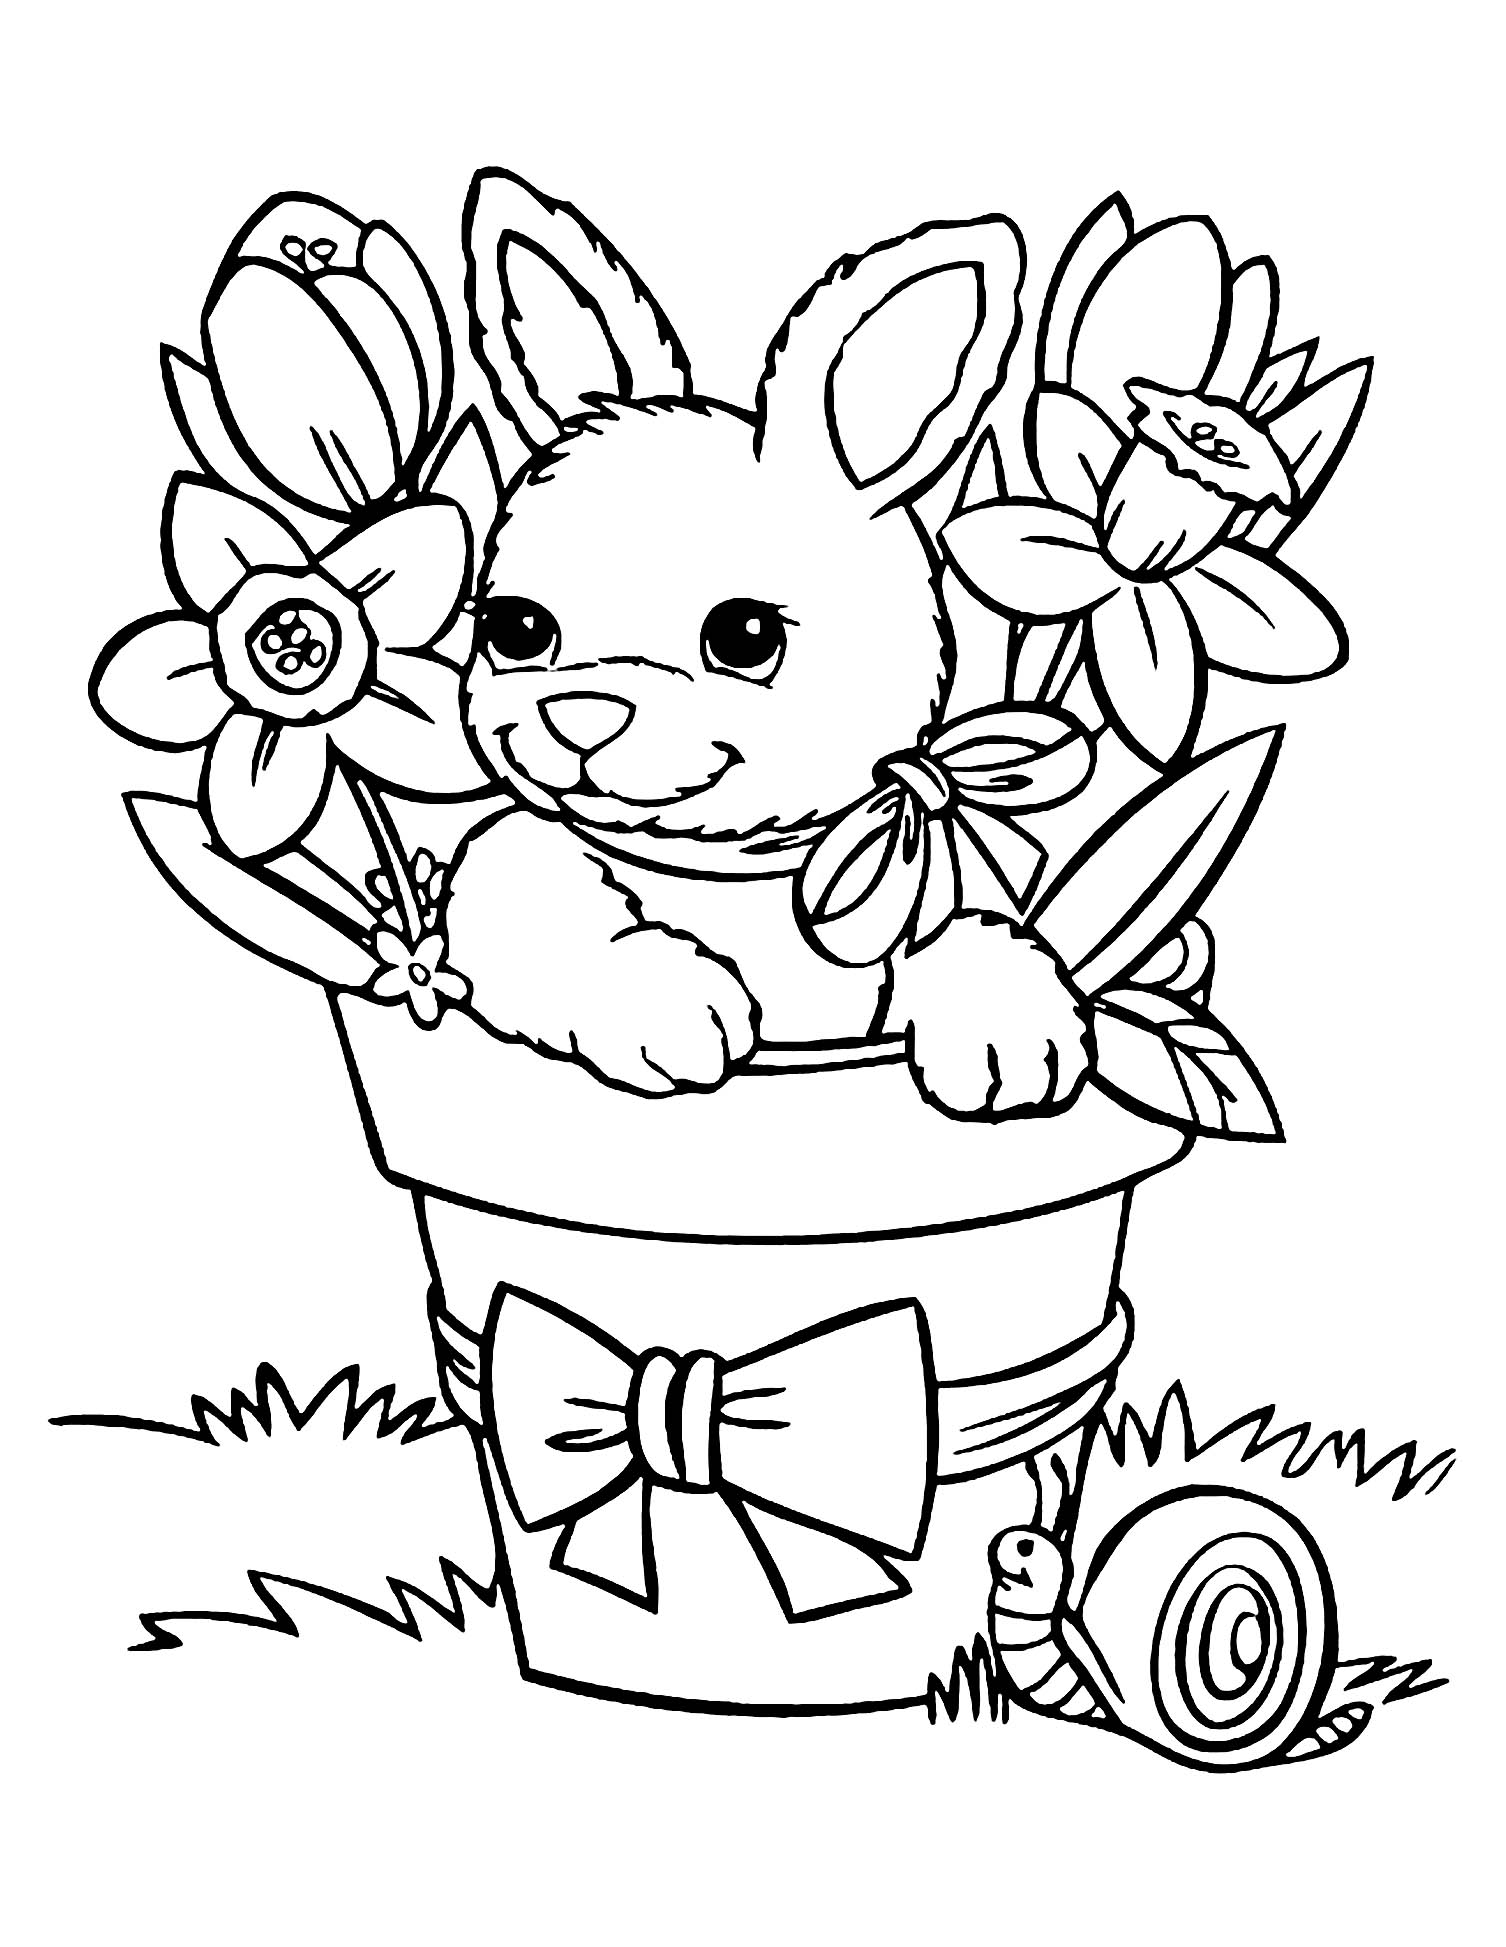 rabbit coloring image coloring pages of a rabbit printable free coloring sheets image coloring rabbit